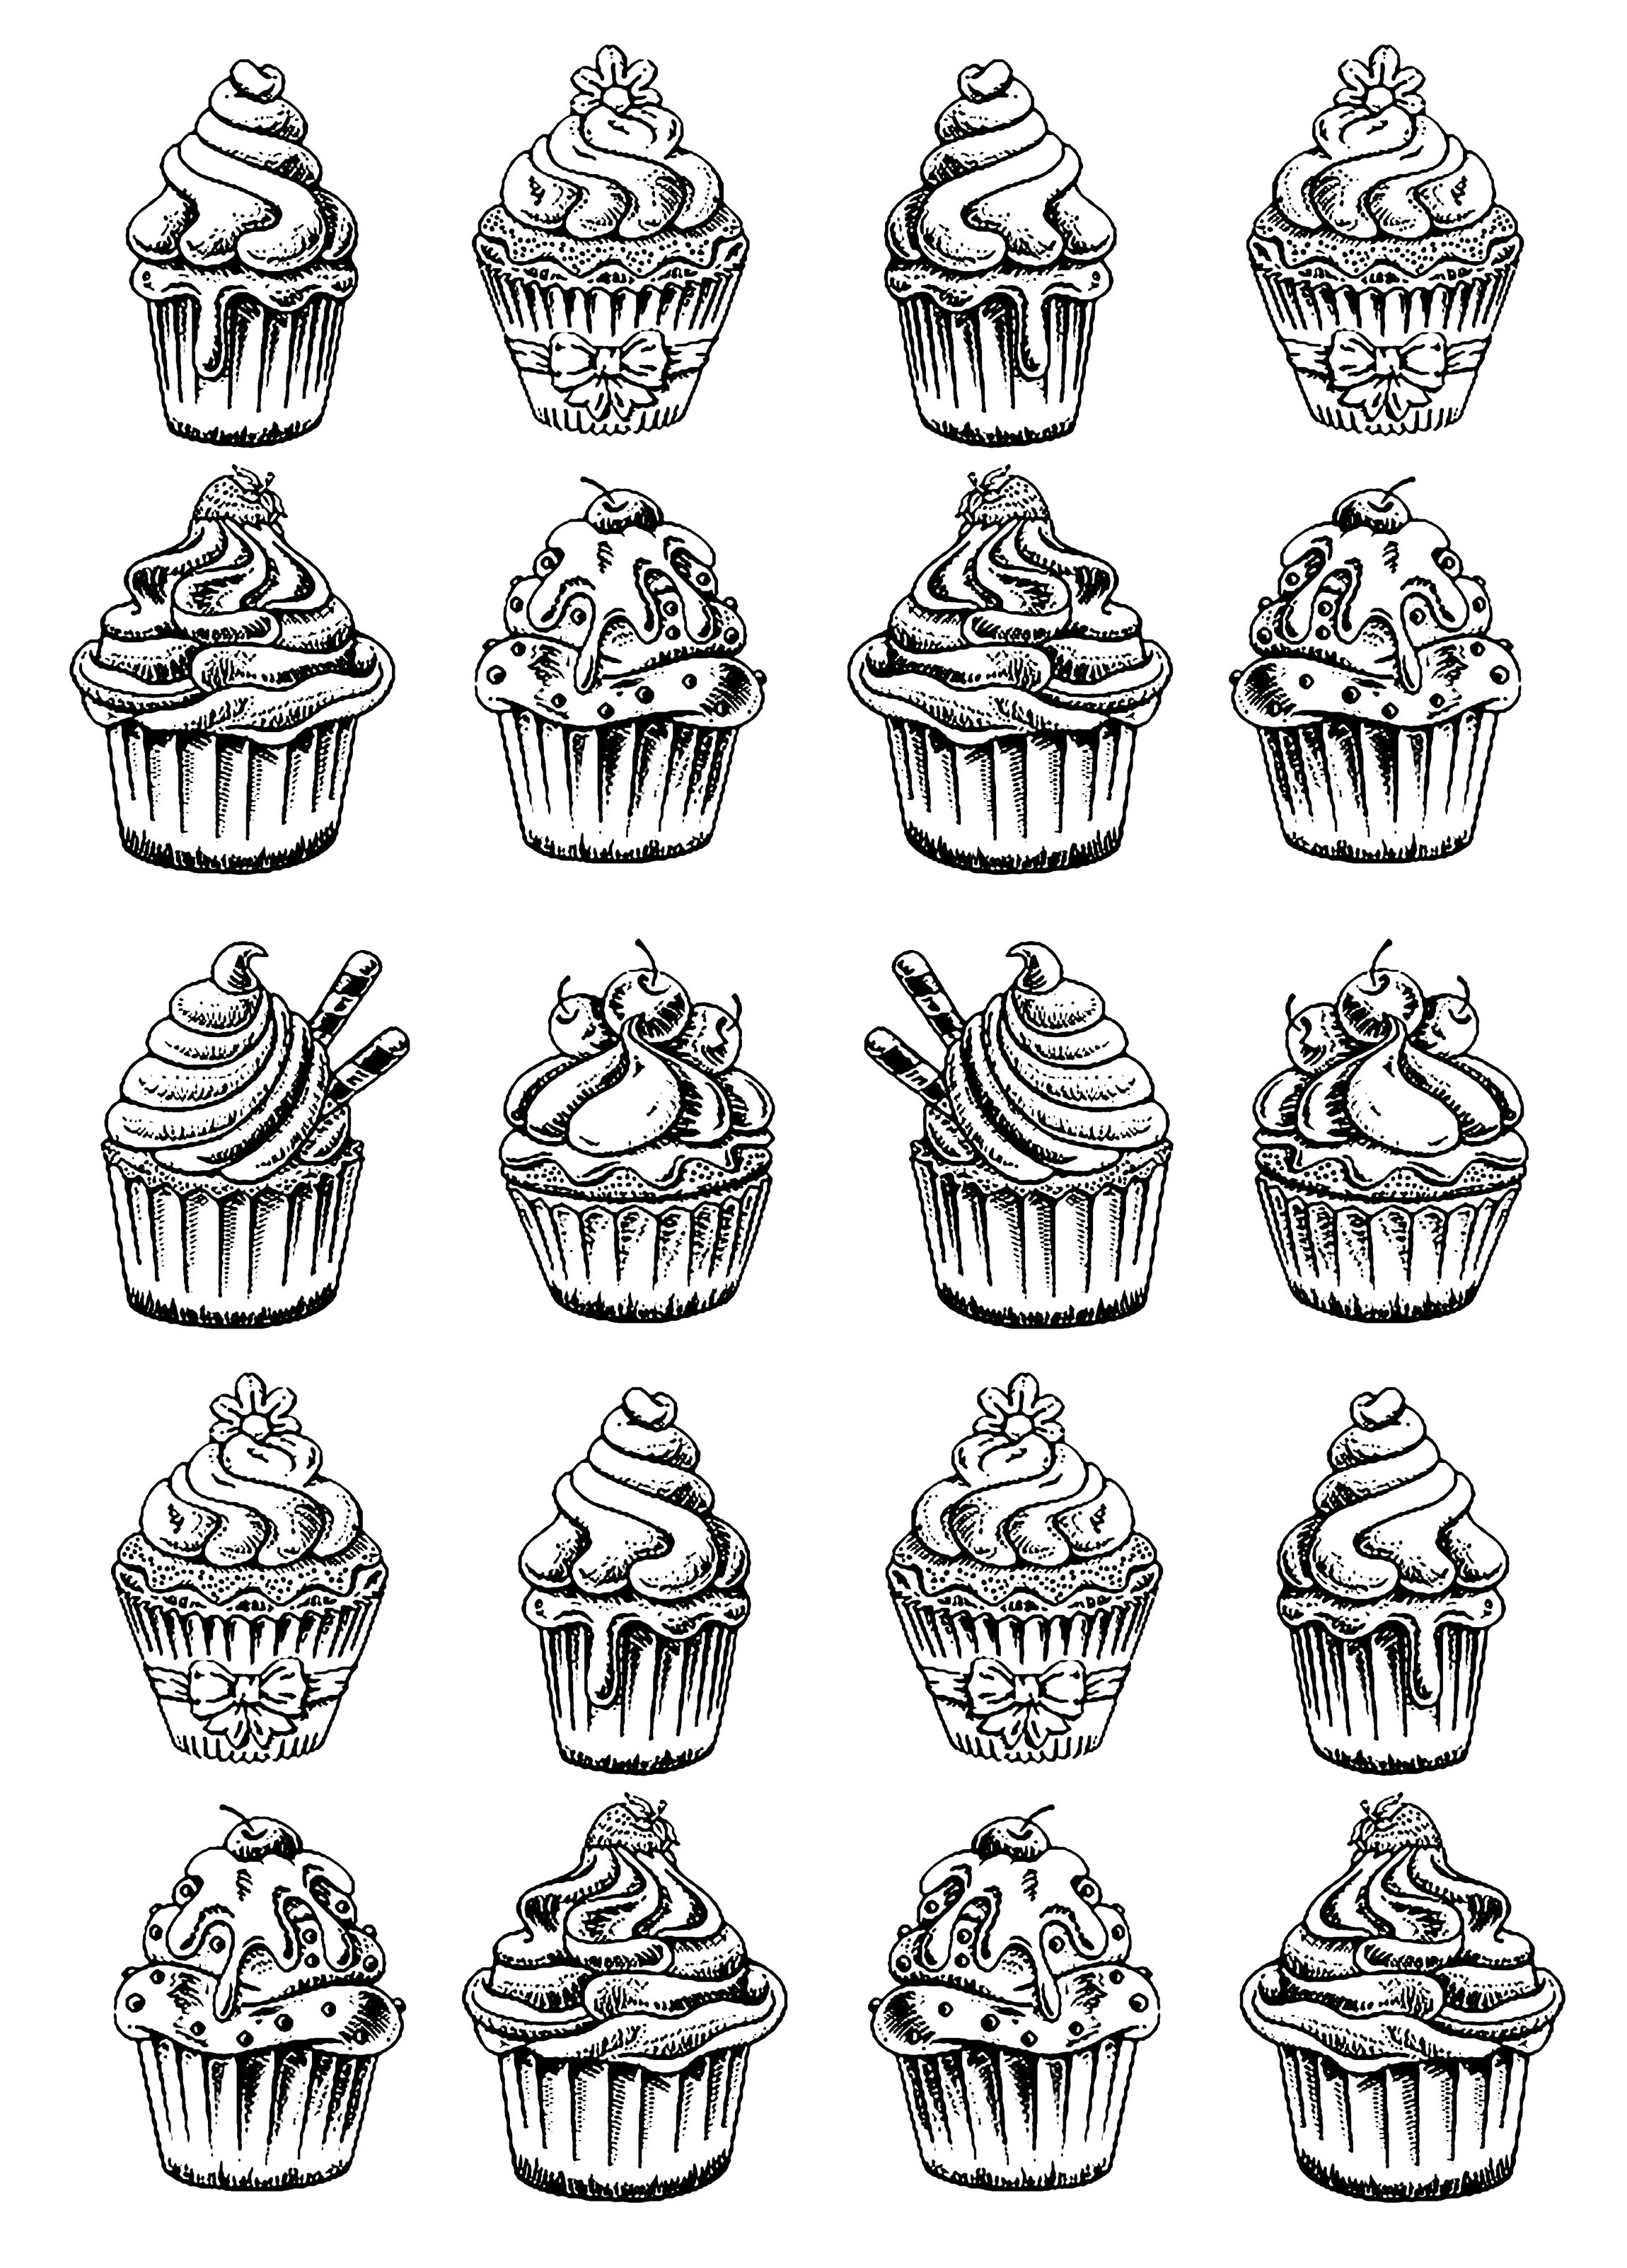 Cup cakes 91158